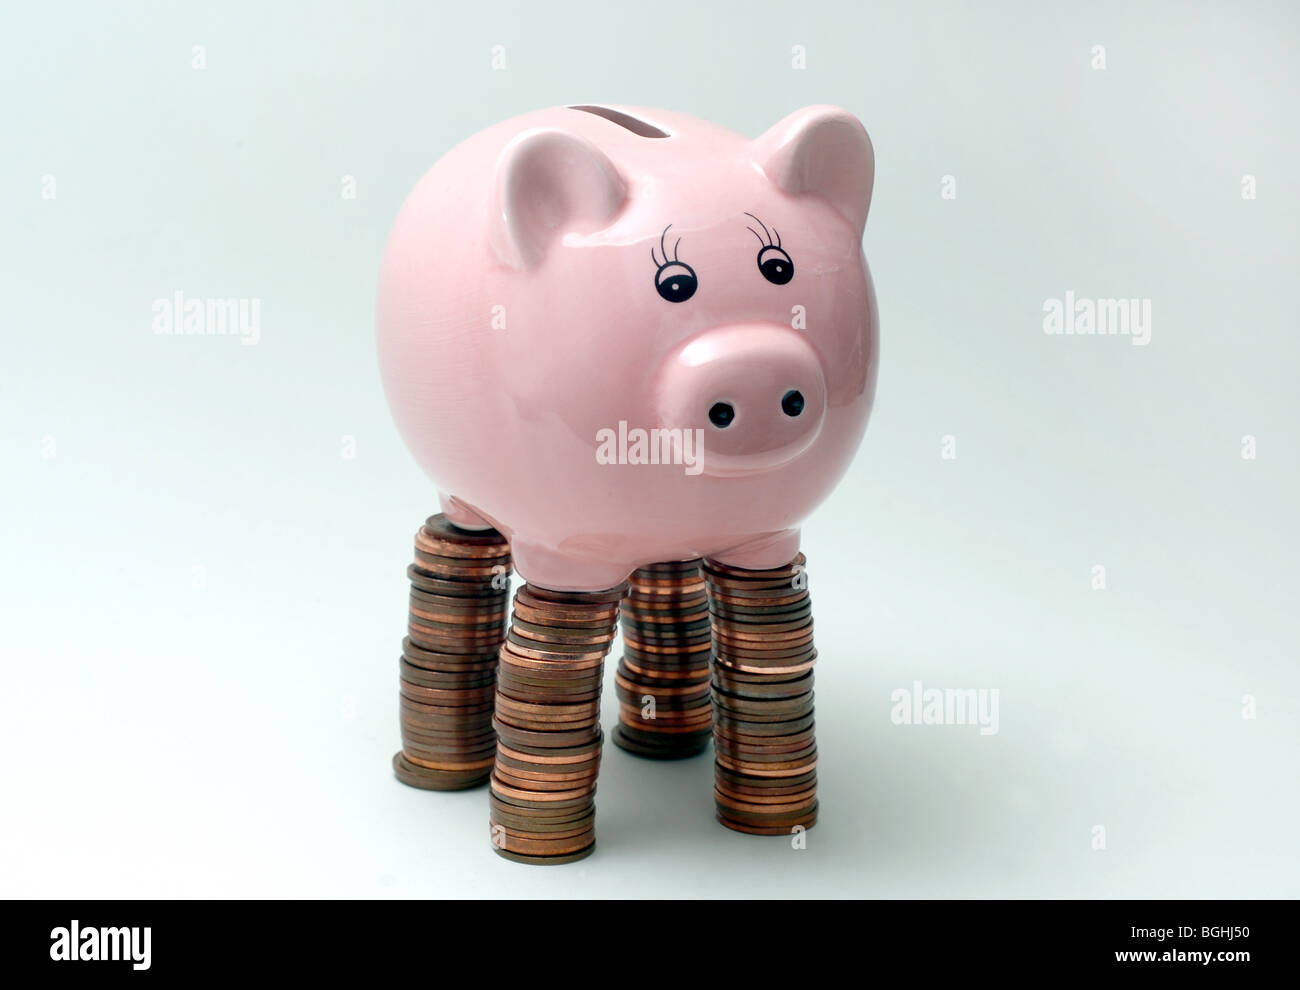 PIGGY BANK,PIGGYBANKS STANDING ON PILES OF BRITISH COINS RE THE ECONOMY SAVINGS INCOMES MORTGAGES  THE ECONOMY UK - Stock Image